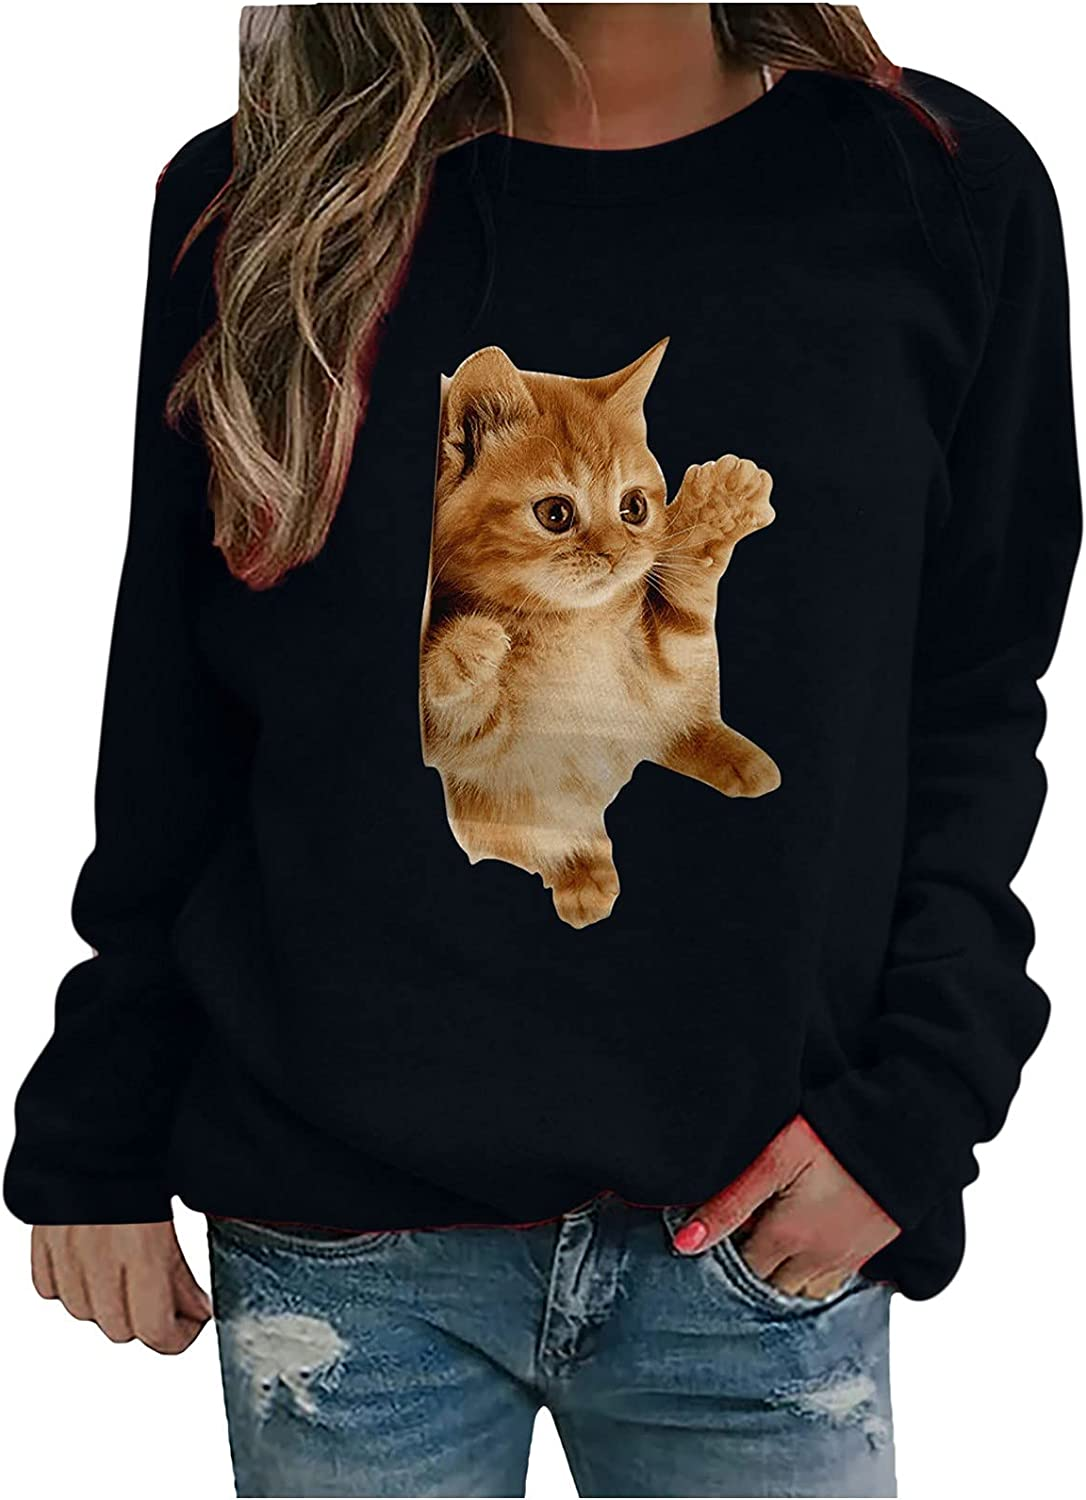 Women Tops Cute Cat Printed Crewneck Long Sleeve Casual Daily Tunic Pullover Comfy Soft Sweatshirts Blouses